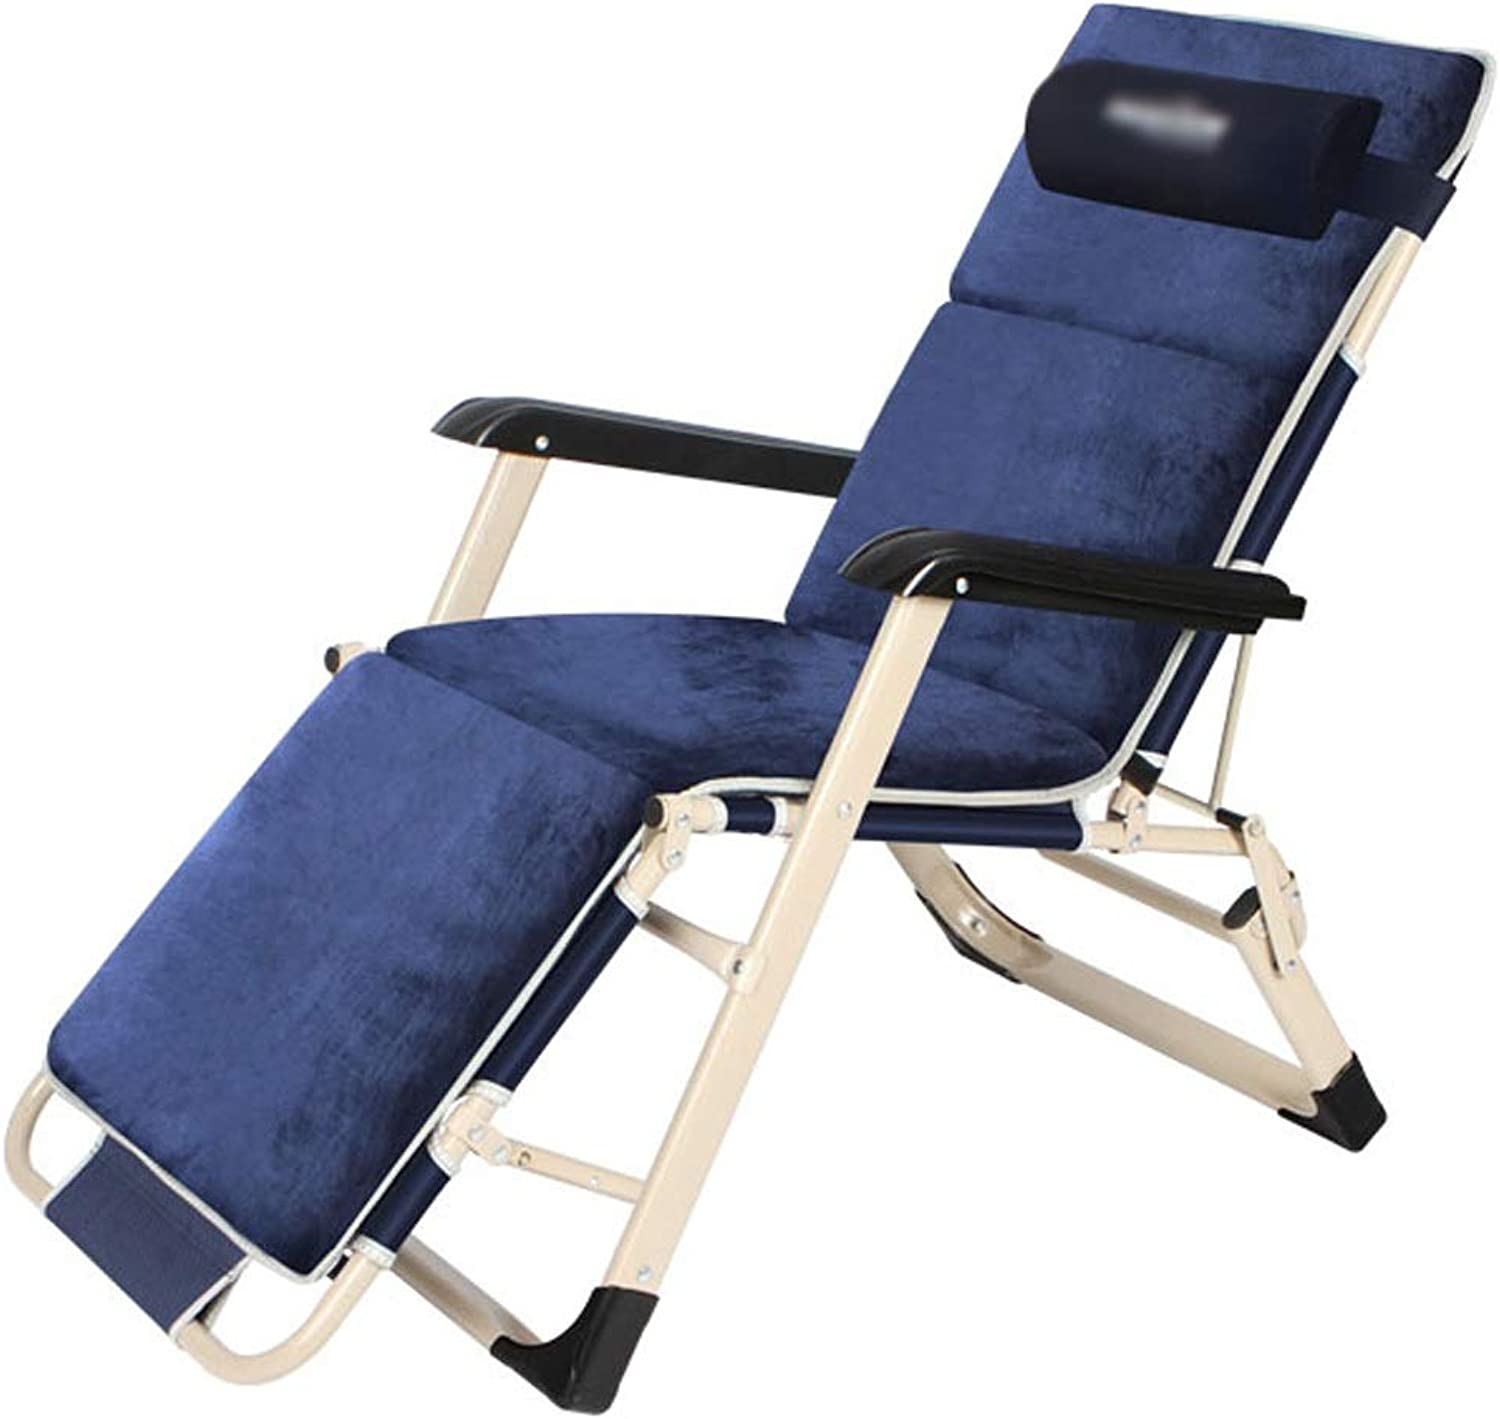 Folding Chair Folding Bed Lunch Break Chair Home Portable Recliner Single Camping Bed Ultra Light Nap Outdoor Bed  178x52x30cm  Twocolor Optional, Adjustable  Disassemble Headrest